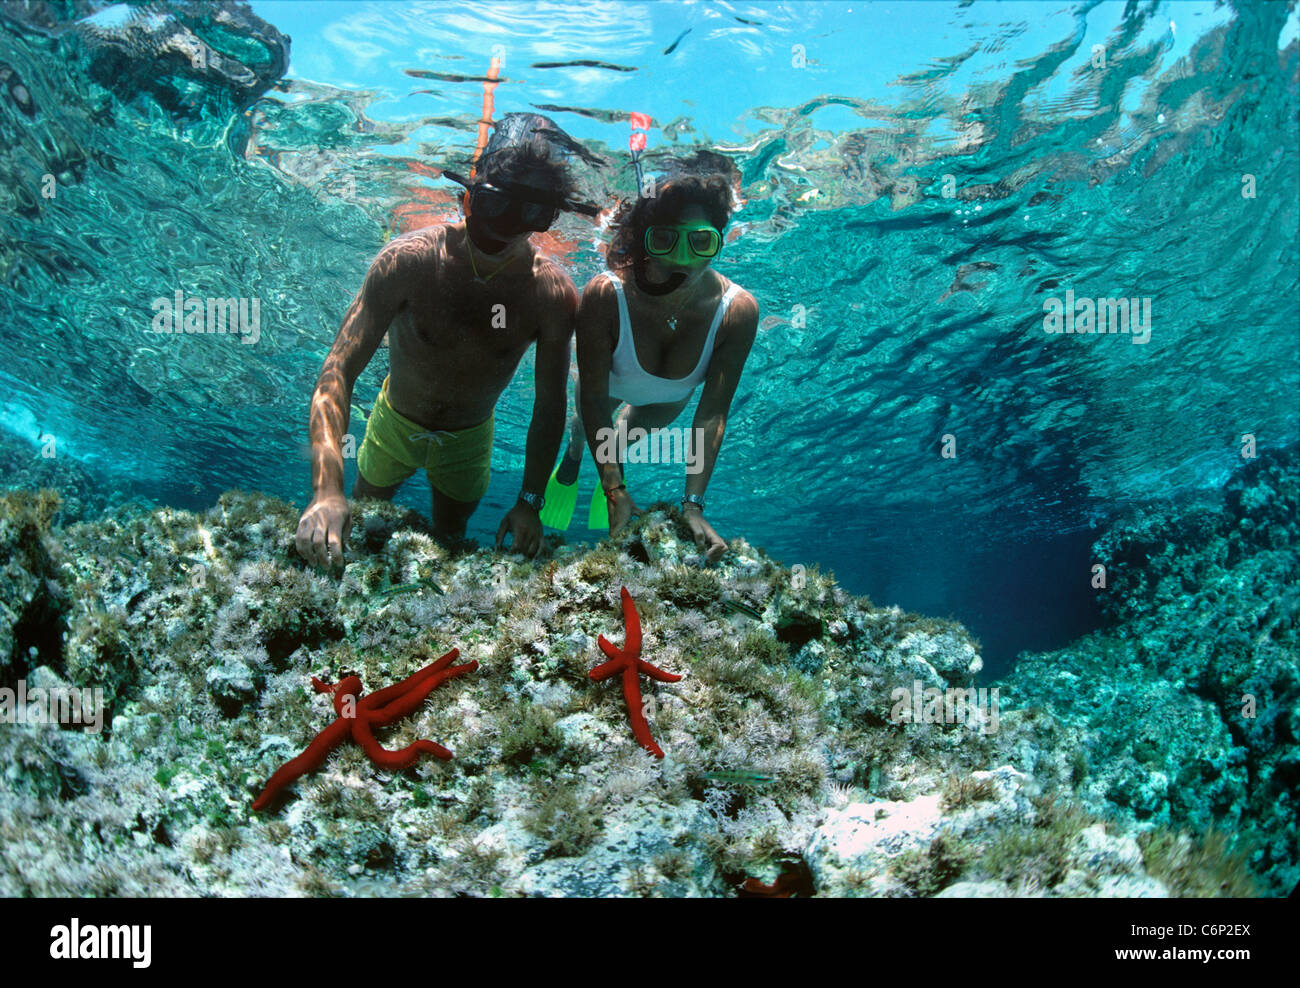 Divers snorkeling on coral table near purple starfish (Ophidiaster ophidianus). Ustica Island, Sicily, Italy, Mediterranean Stock Photo